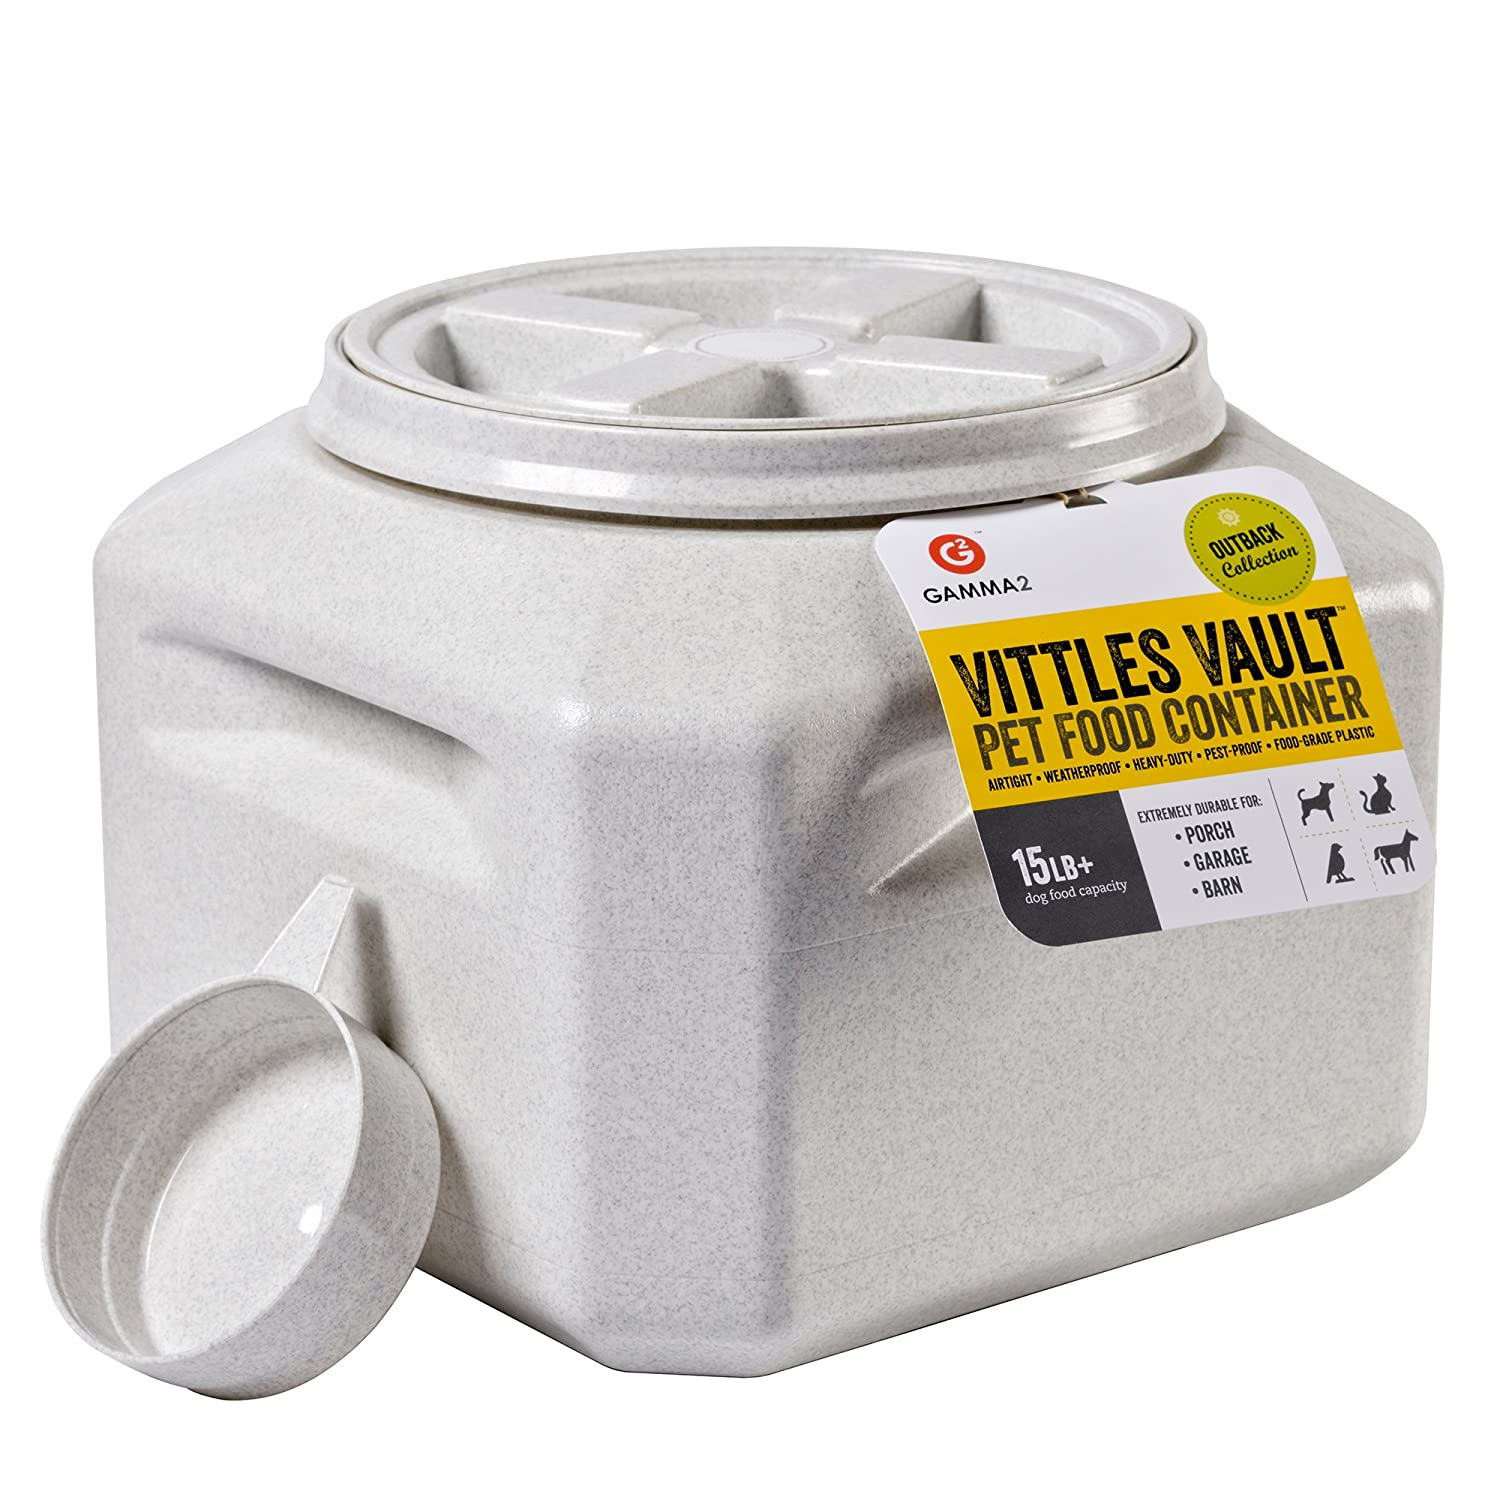 Superieur Pet Supplies : Vittles Vault Outback 15 Lb Airtight Pet Food Storage  Container : Pet Food Storage Products : Amazon.com